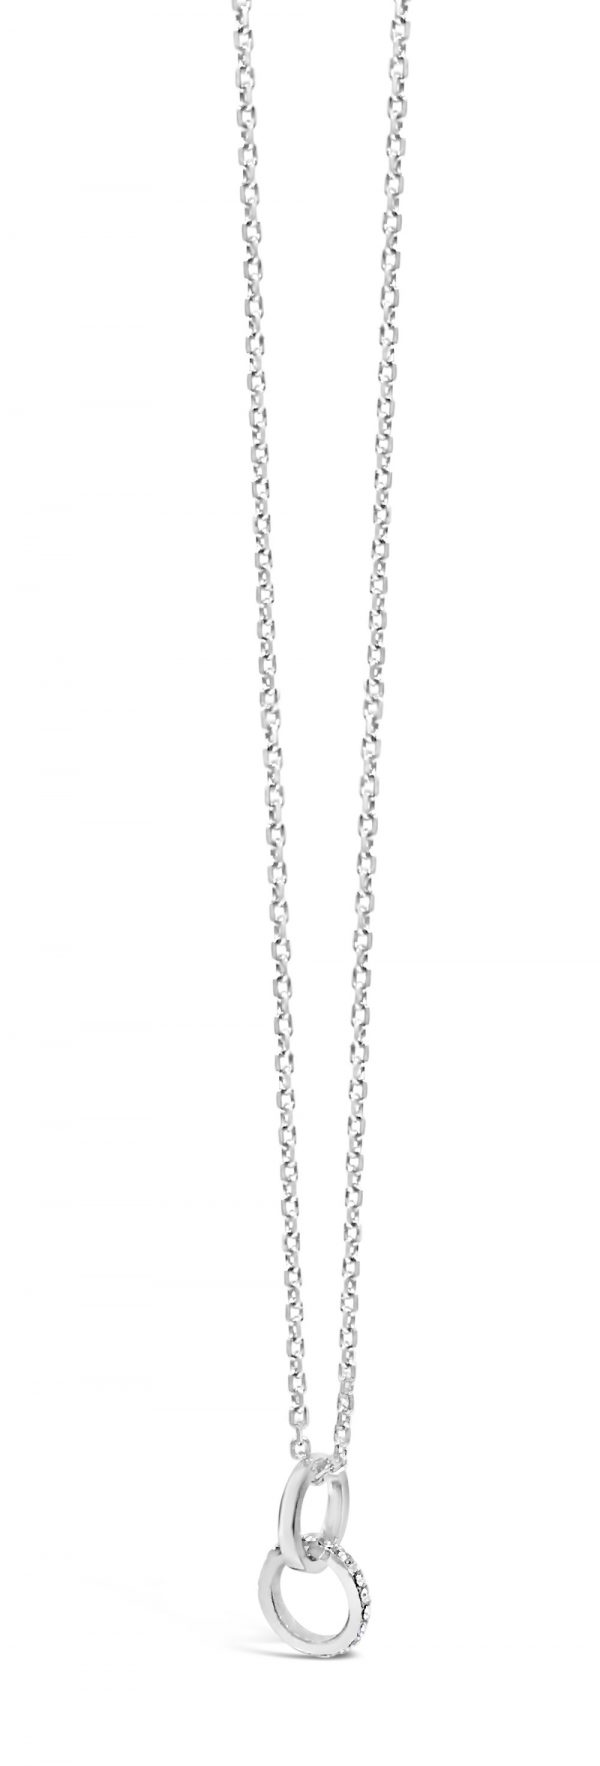 ABSOLUTE N587SL NECKLACE